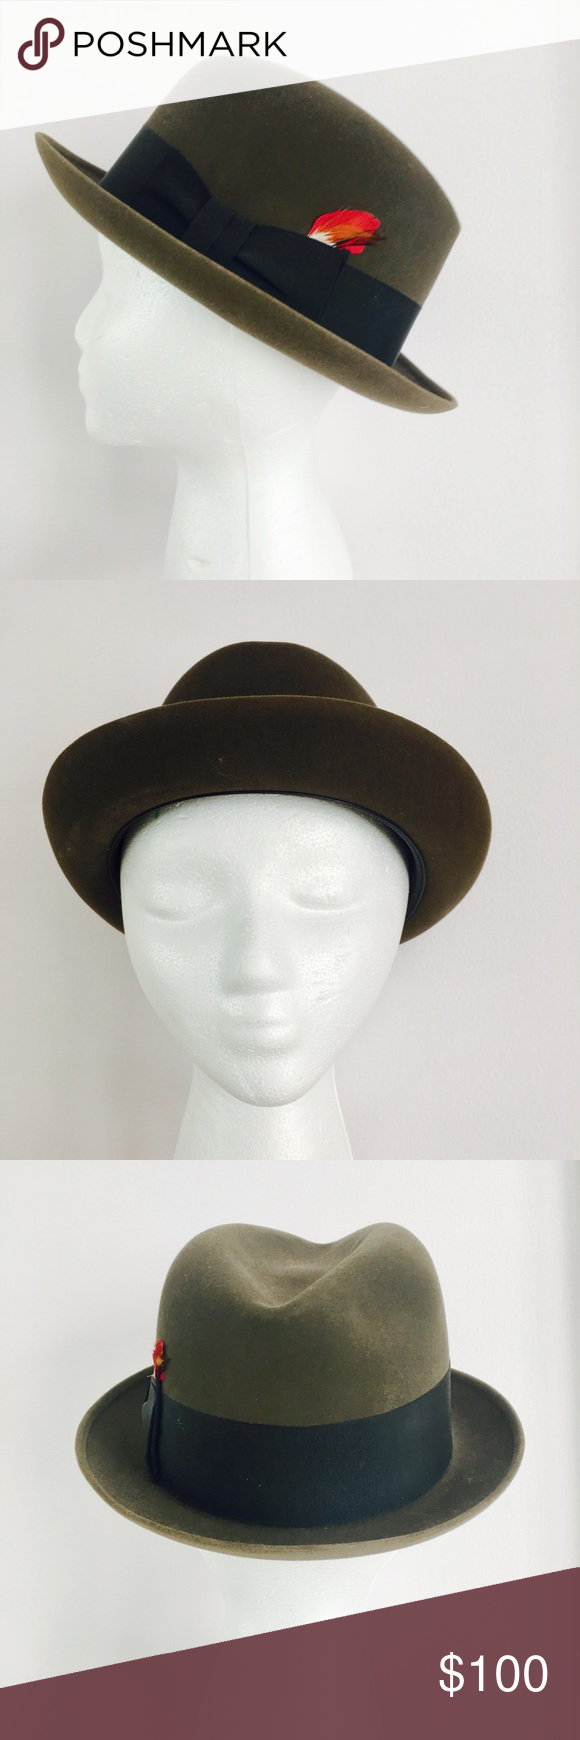 747108770606f Vintage 1960s Dobbs Fifth Avenue Men s Fedora Hat Vintage 1960s handsome  mens fedora style hat from Dobbs of Fifth Avenue. Will come with the  original Dobbs ...